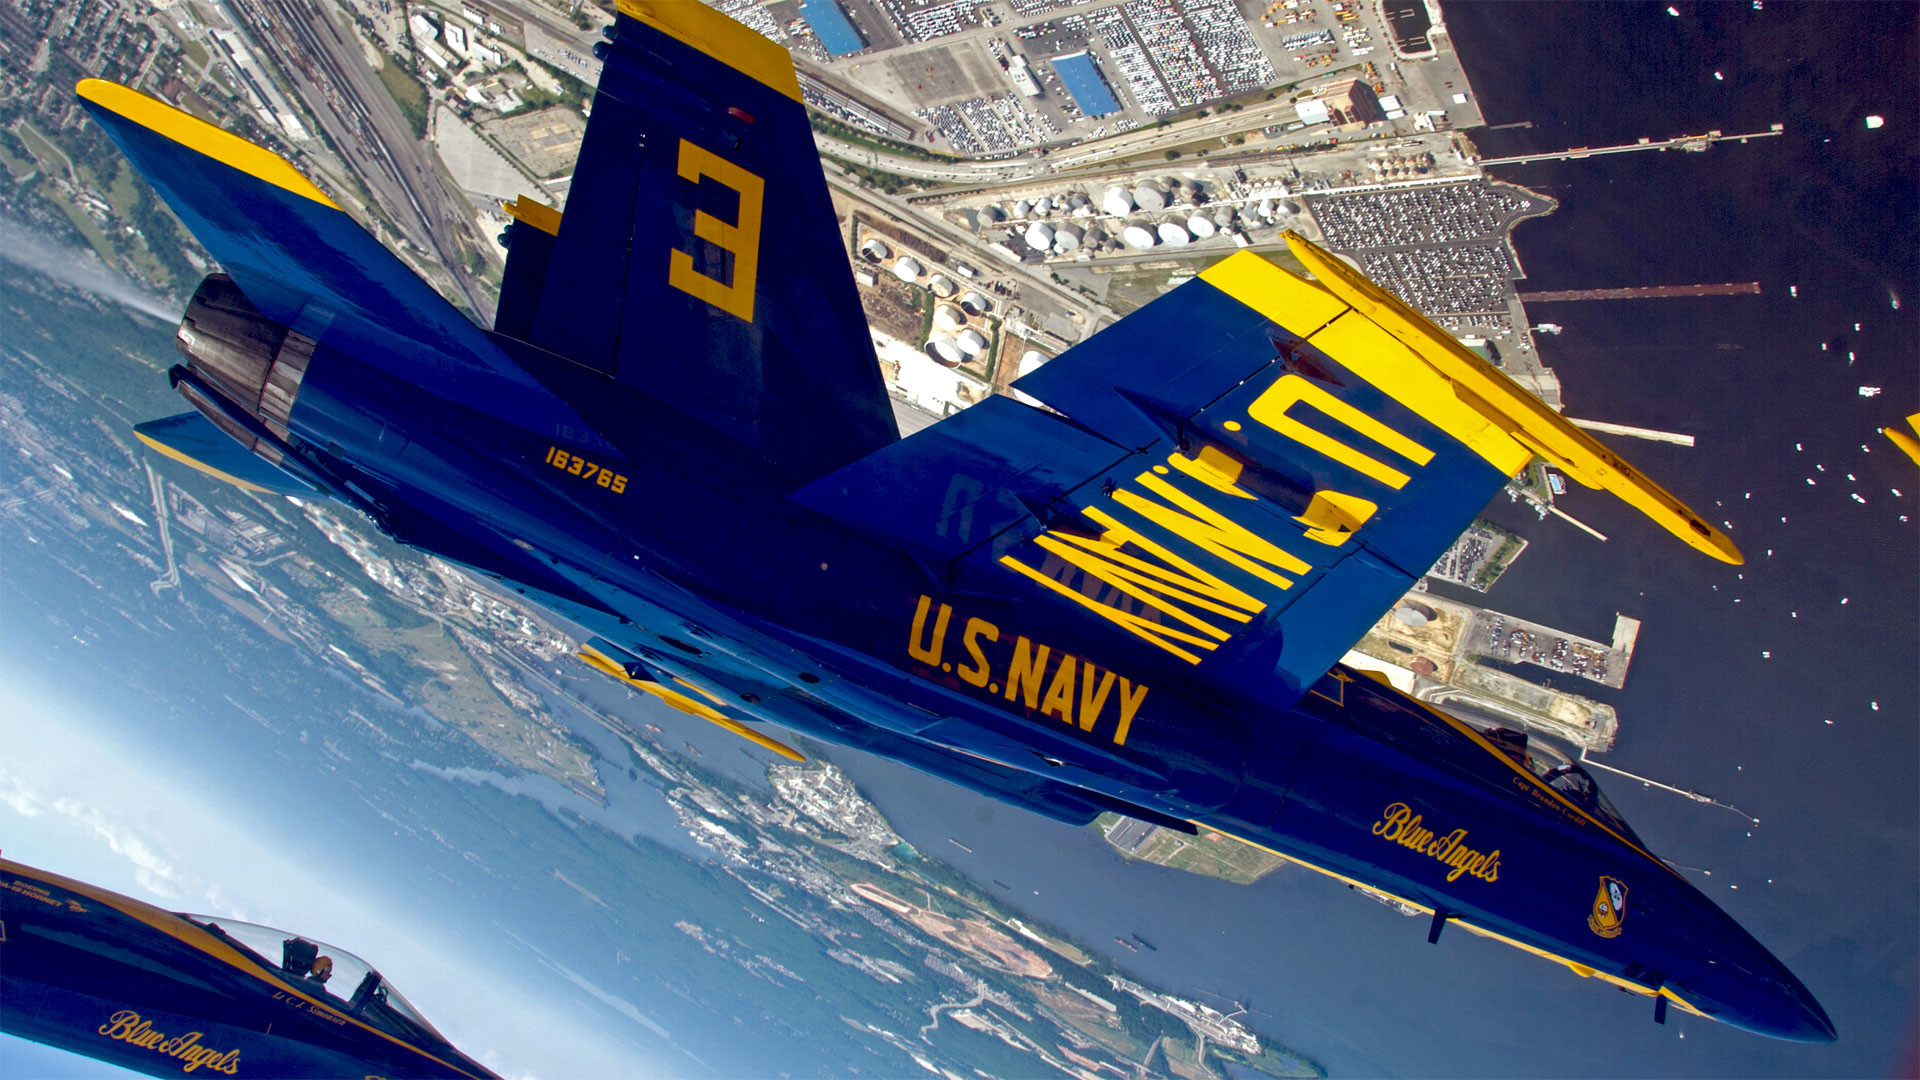 1920x1080 Blue Angels Wallpaper Desktop Post your desktop - ffxiah.com